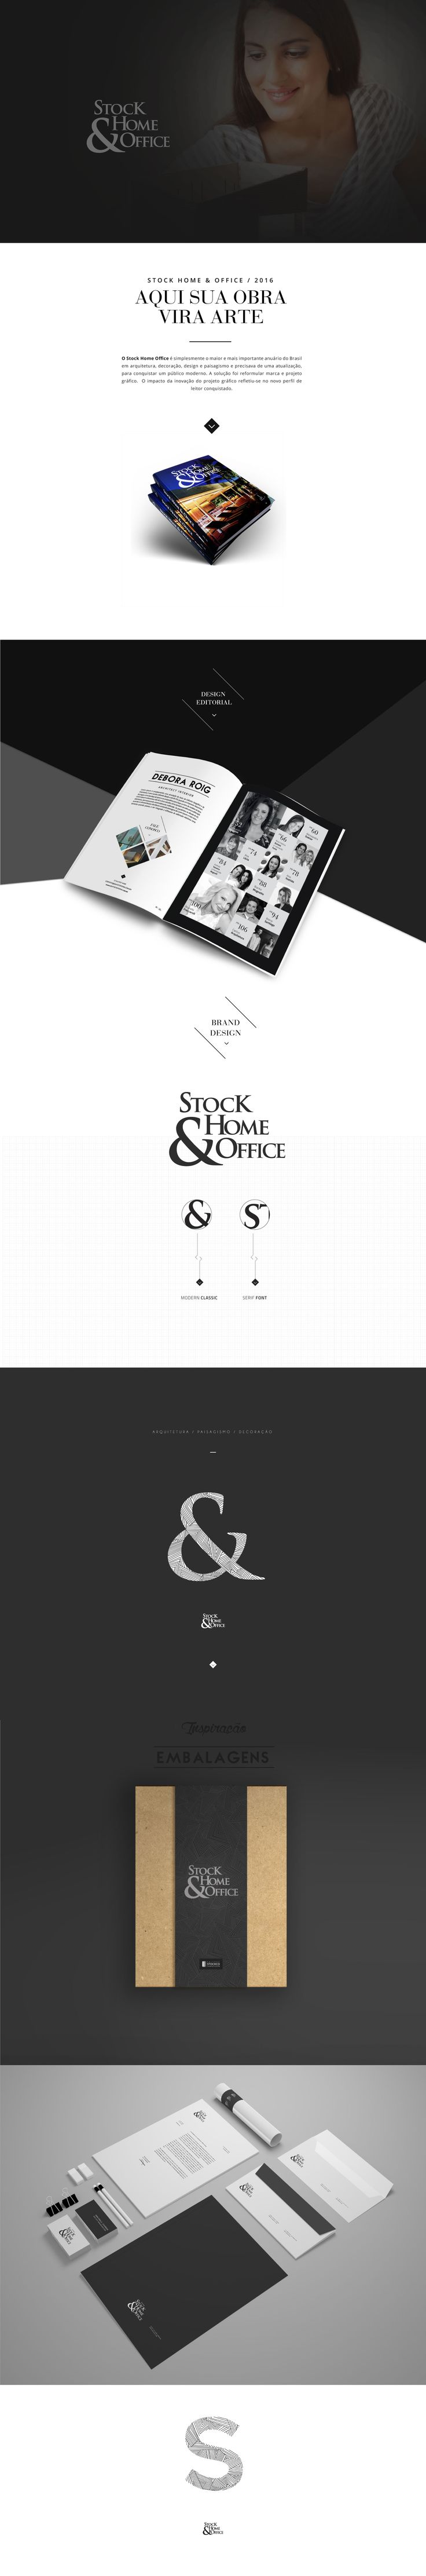 Stock home Office